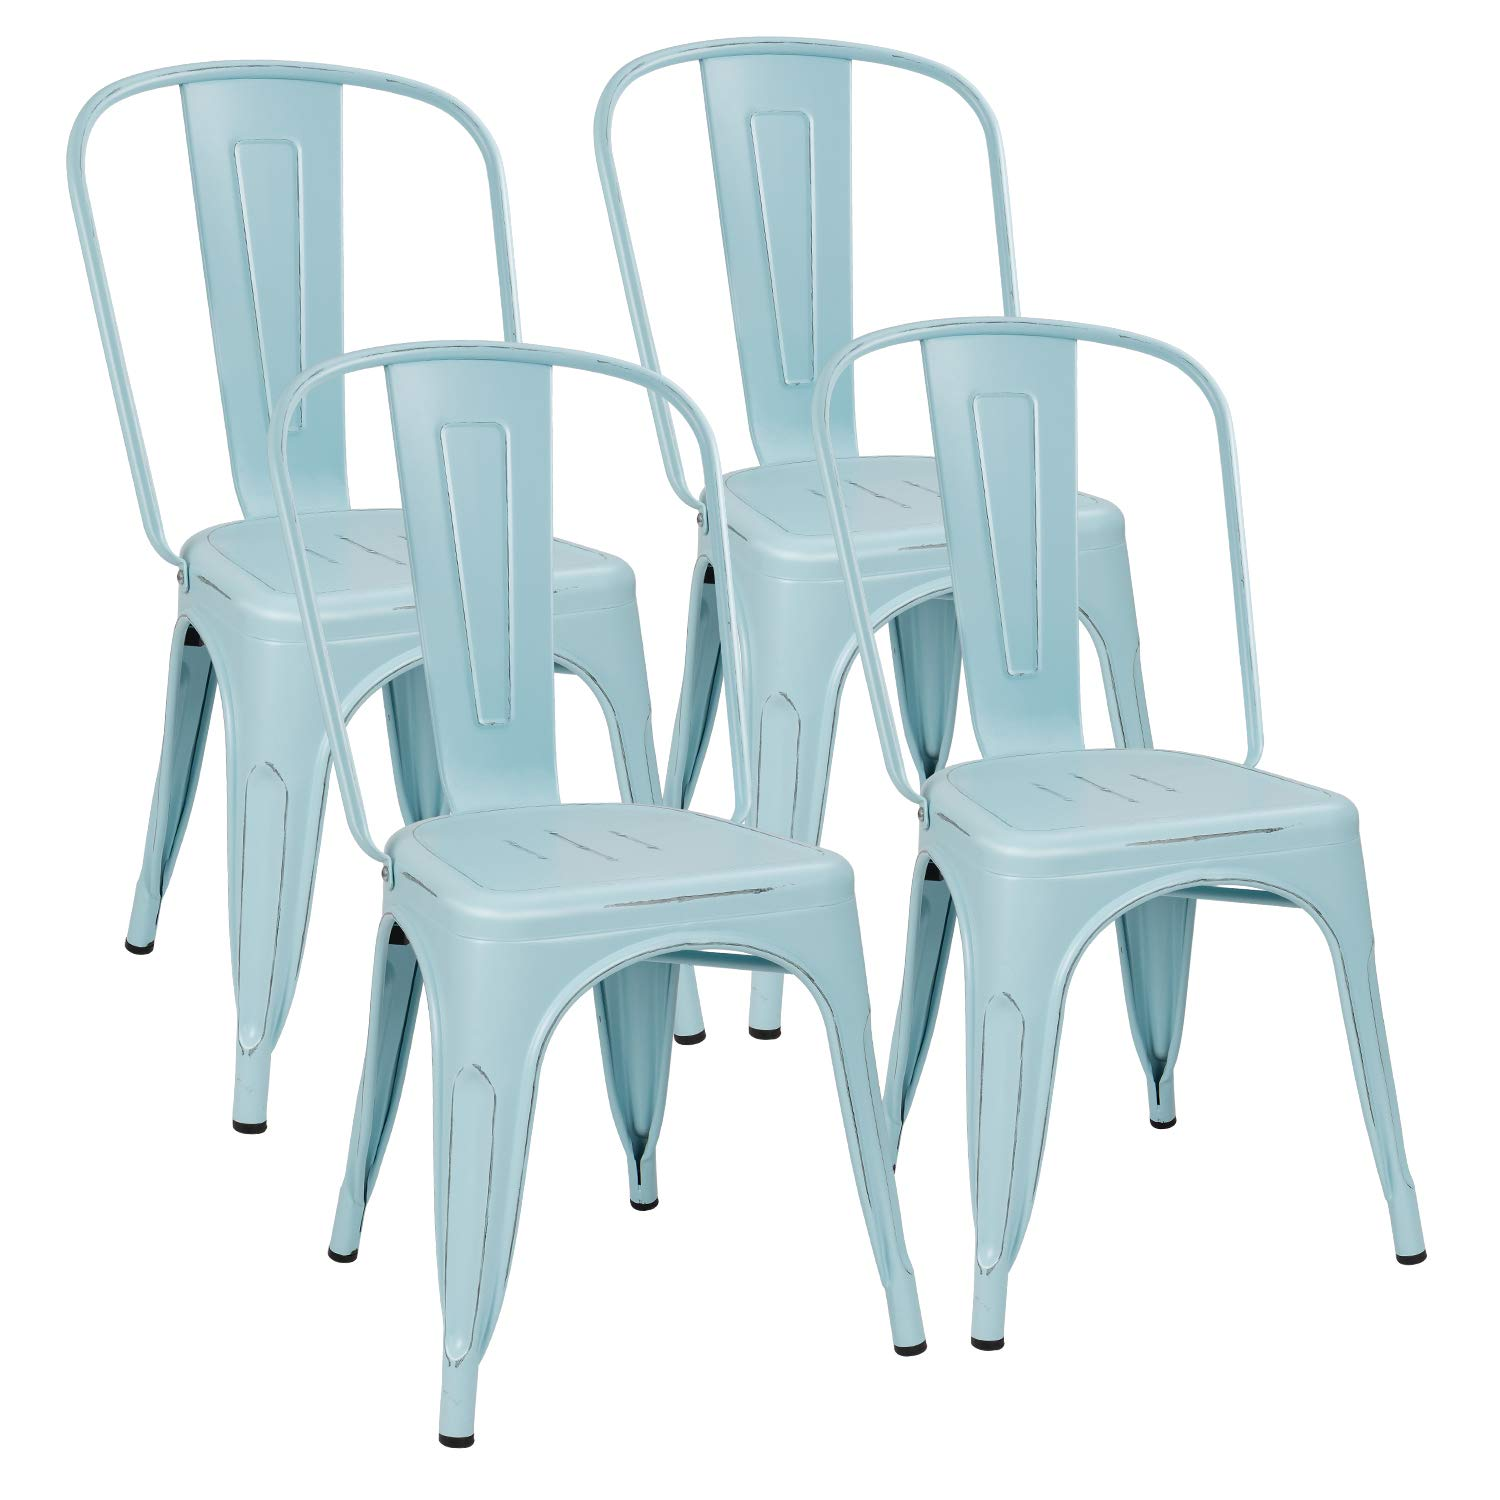 Flamaker Metal Dining Chairs Stackable Kitchen Dining Chairs Metal Chairs Bistro Cafe Side Chairs Height Restaurant Chairs Tolix Side Bar Chairs, Set of 4 (Distressed Blue) by Flamaker